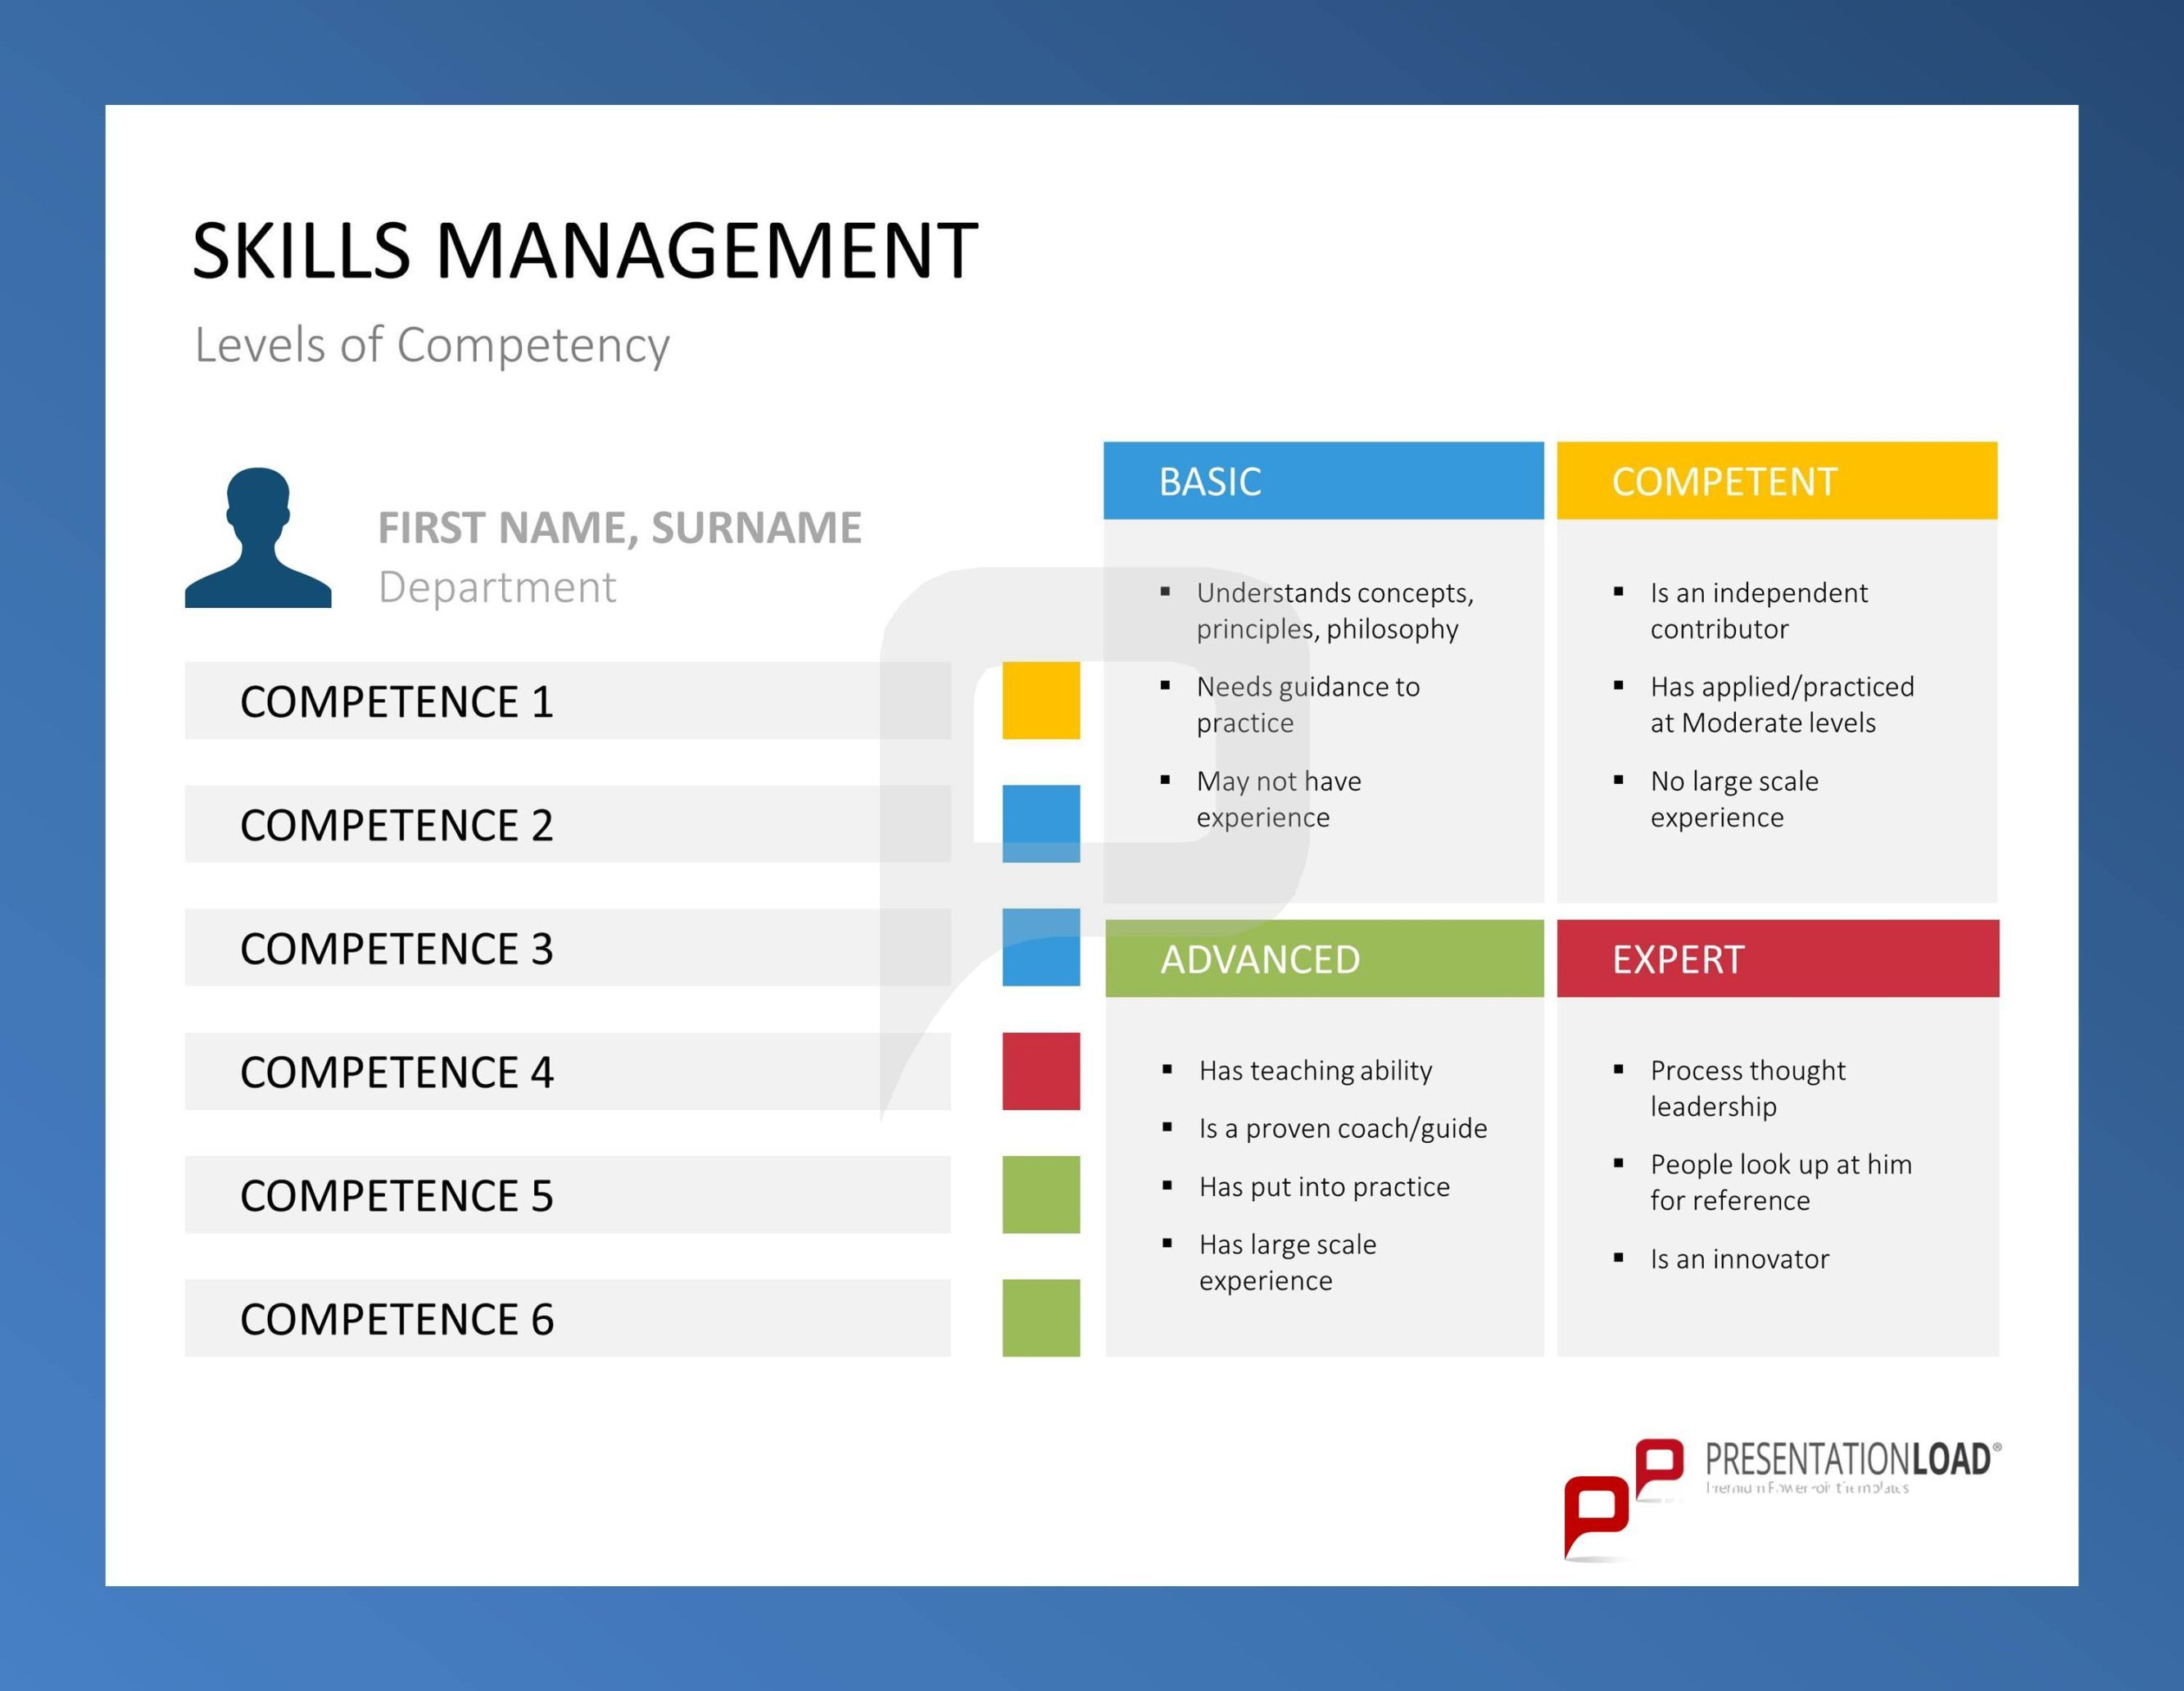 SKILLS MANAGEMENT Levels of Competency // Skills Management ...